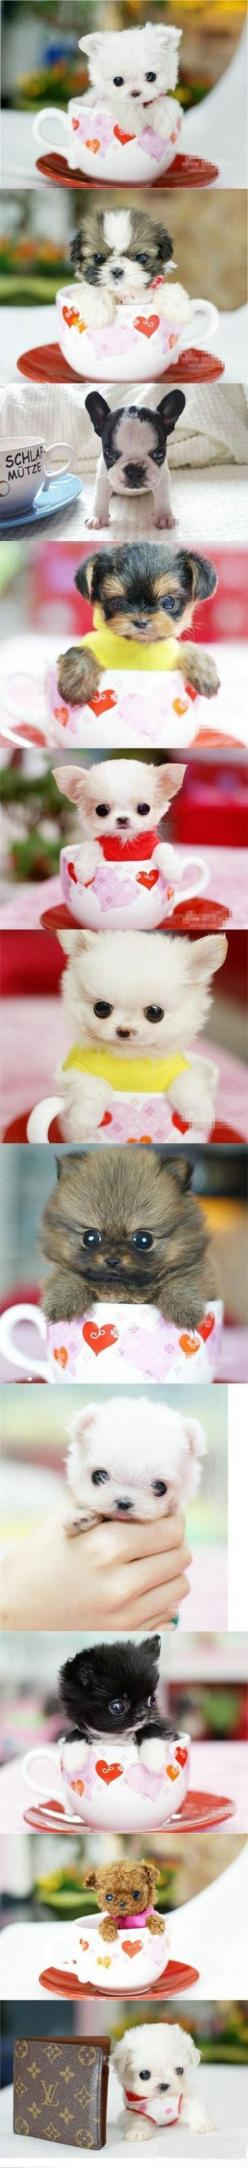 Cutest teacup puppies EVER!! I want every single one of these!!!: Cute Puppies, Tea Cup Puppy, Puppy Love, Teacup Puppies, Teacup Pups, Puppys, Tea Cup Dog